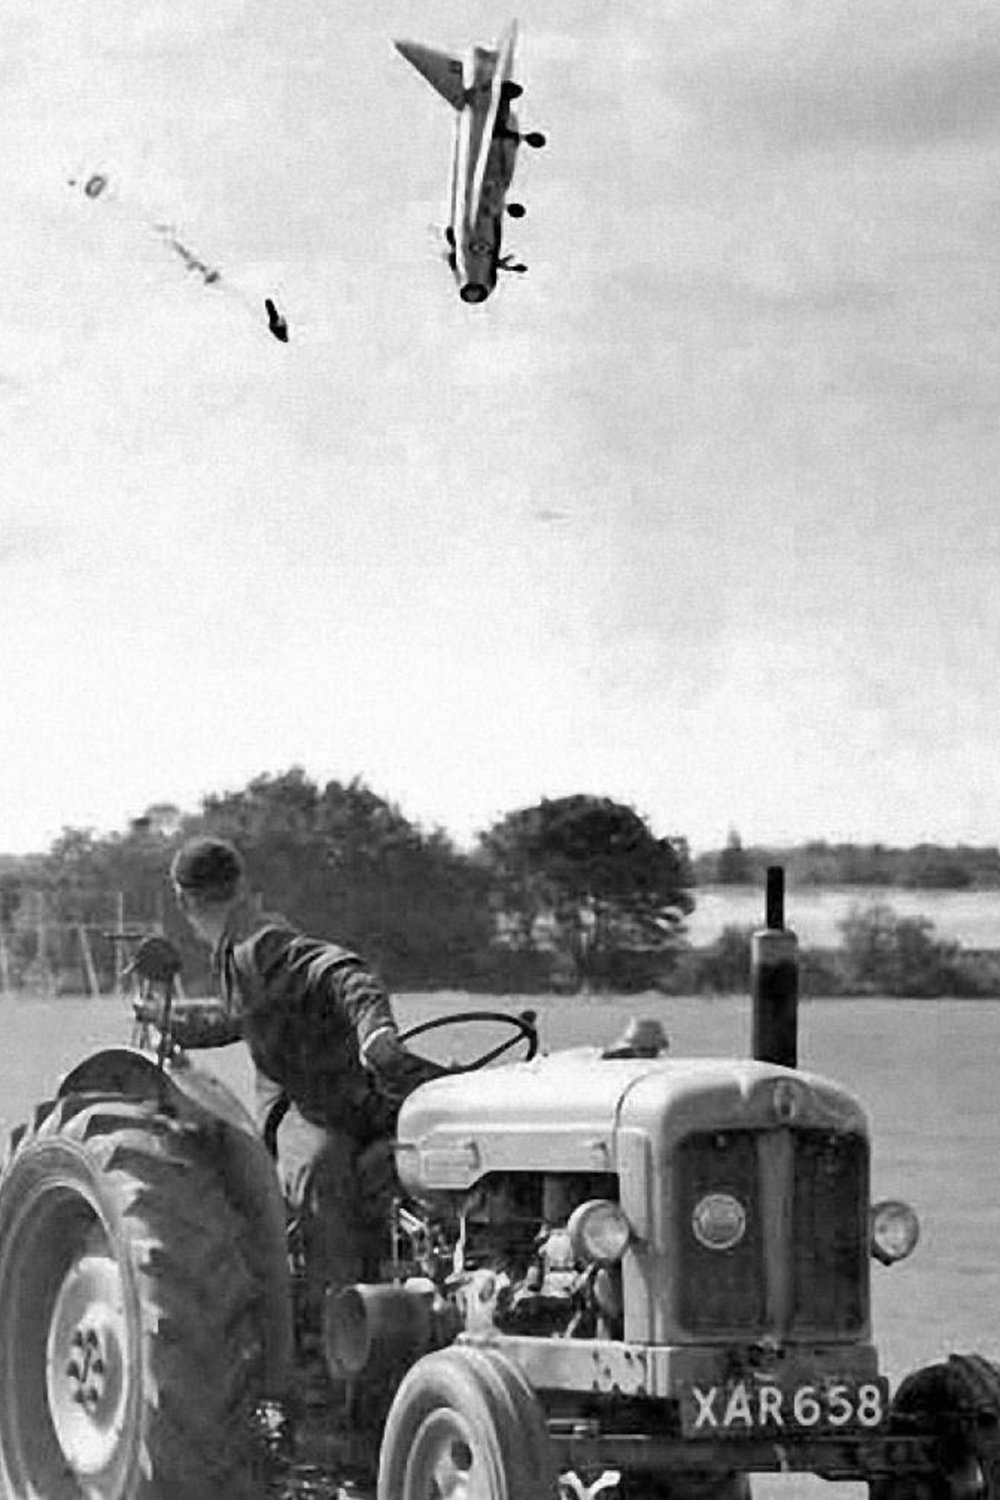 George Aird ejects from jet, 1962